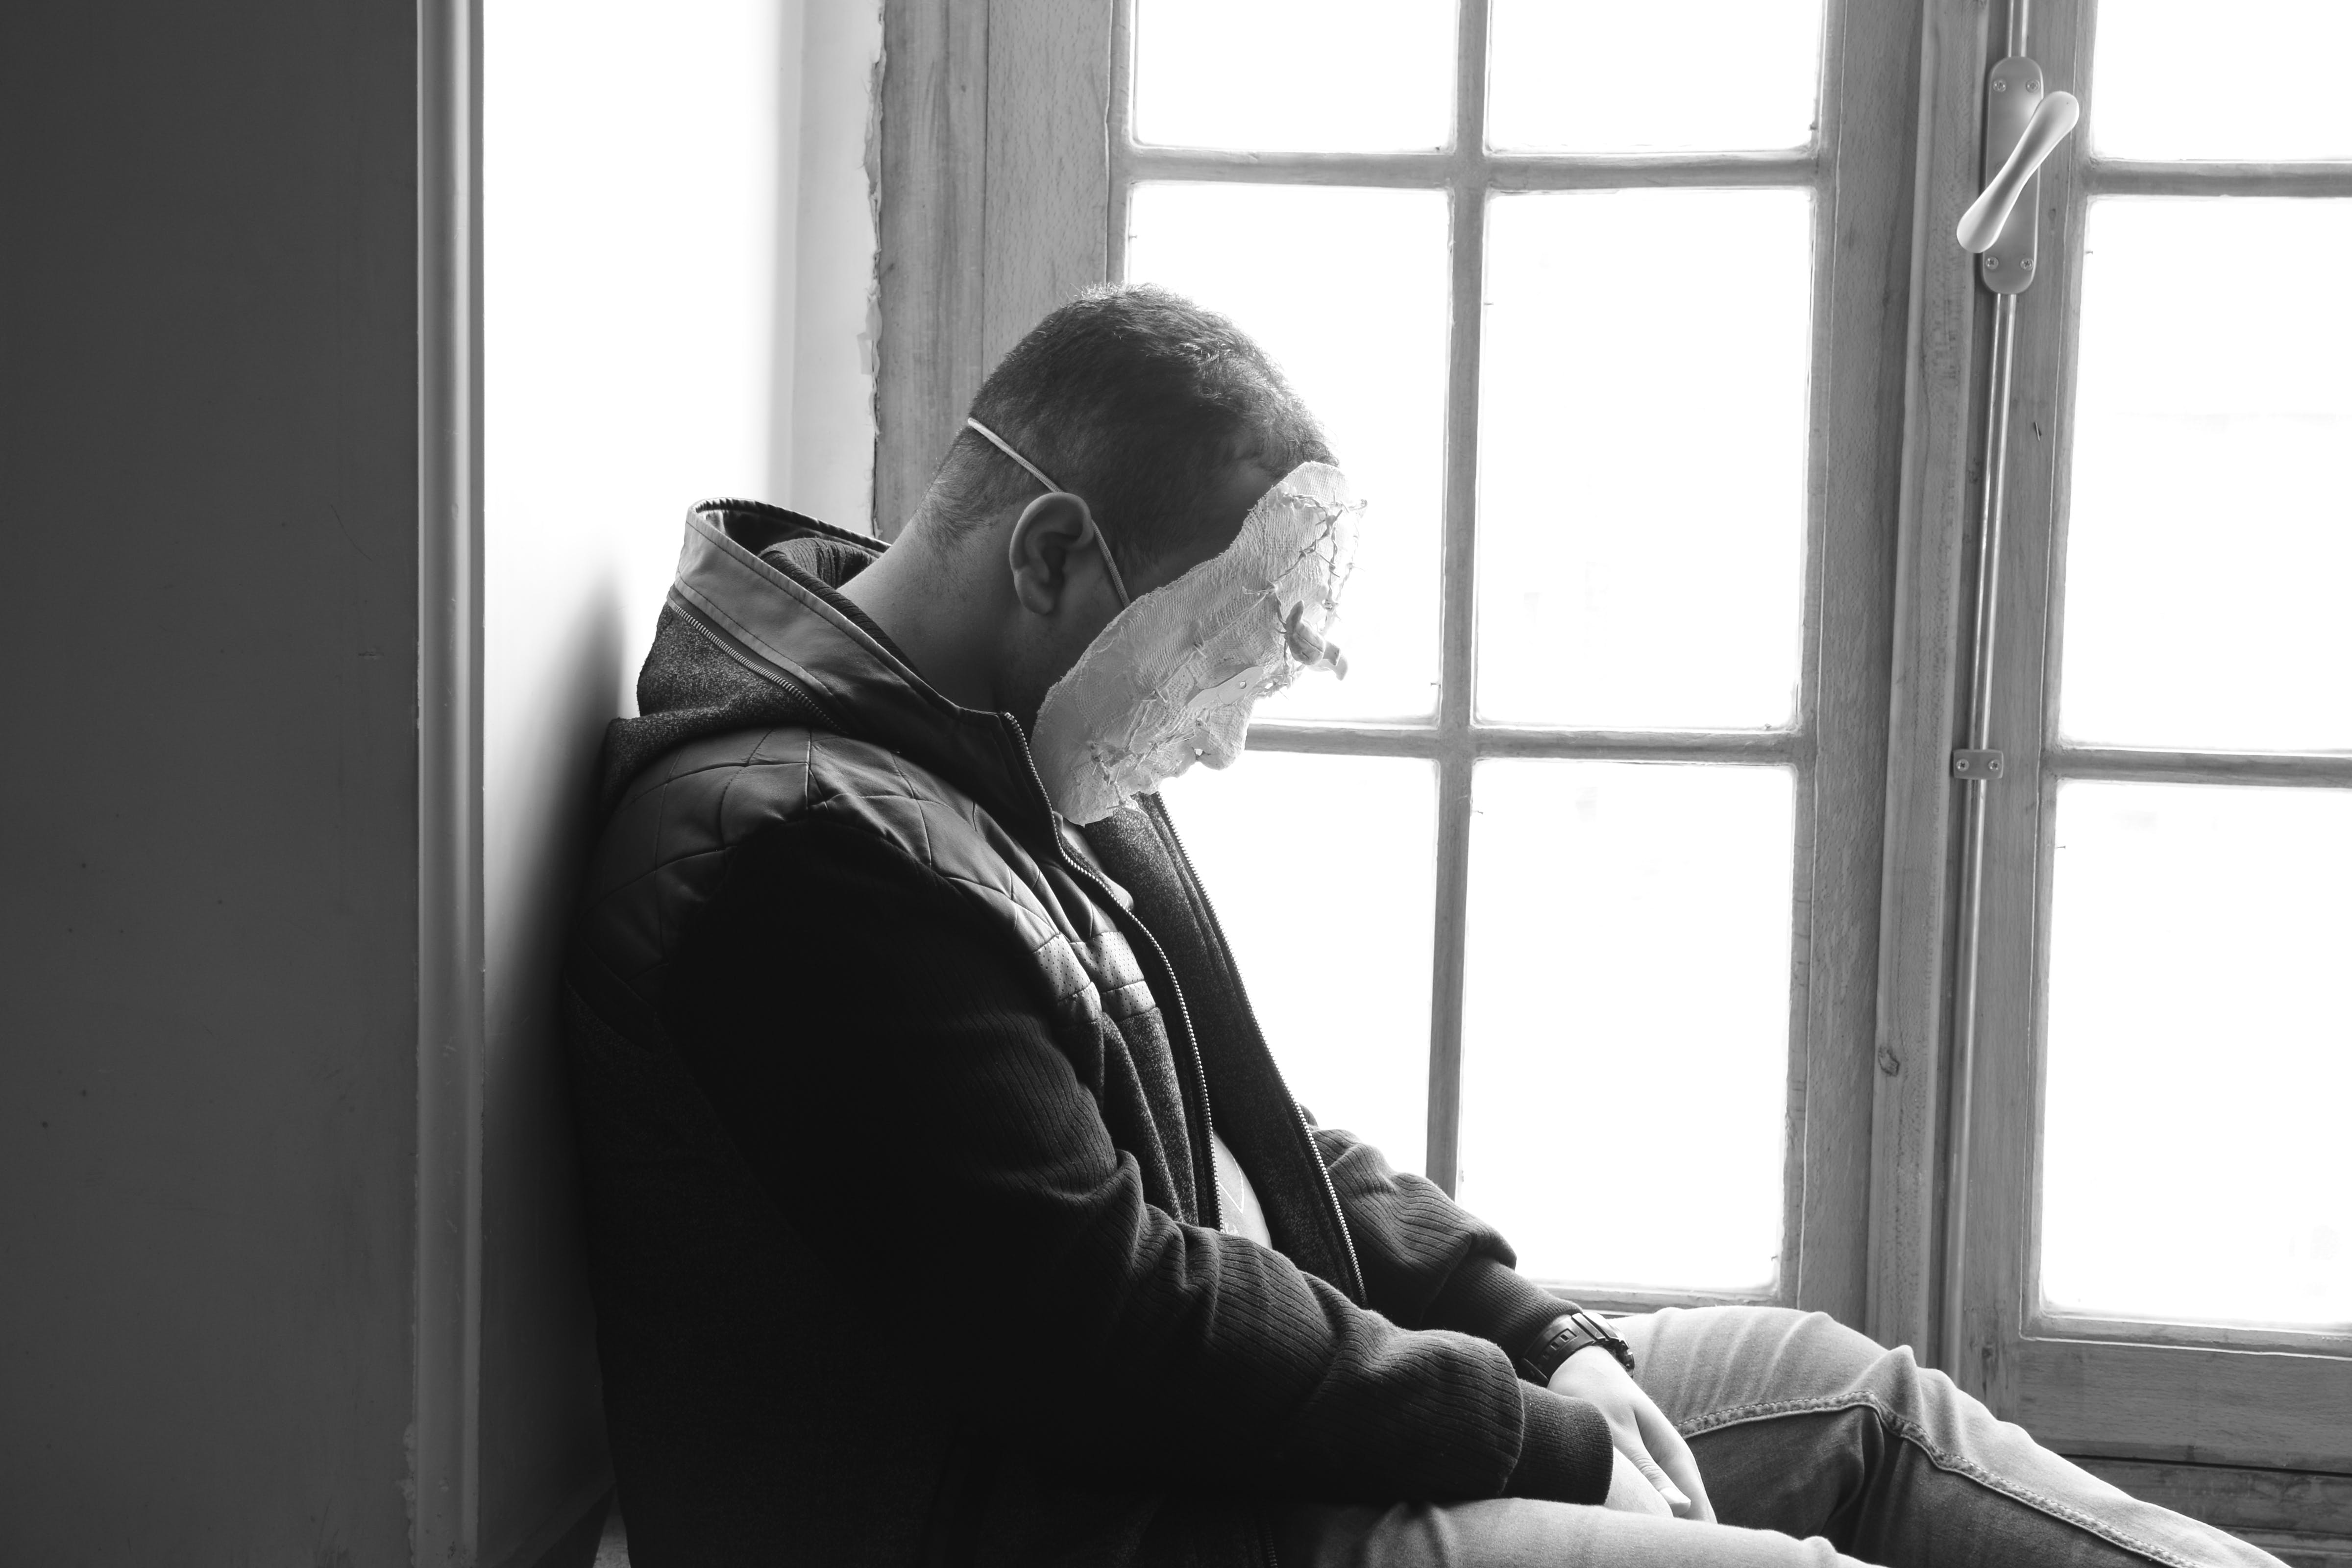 Man Wearing Mask Sitting Near Window Panel